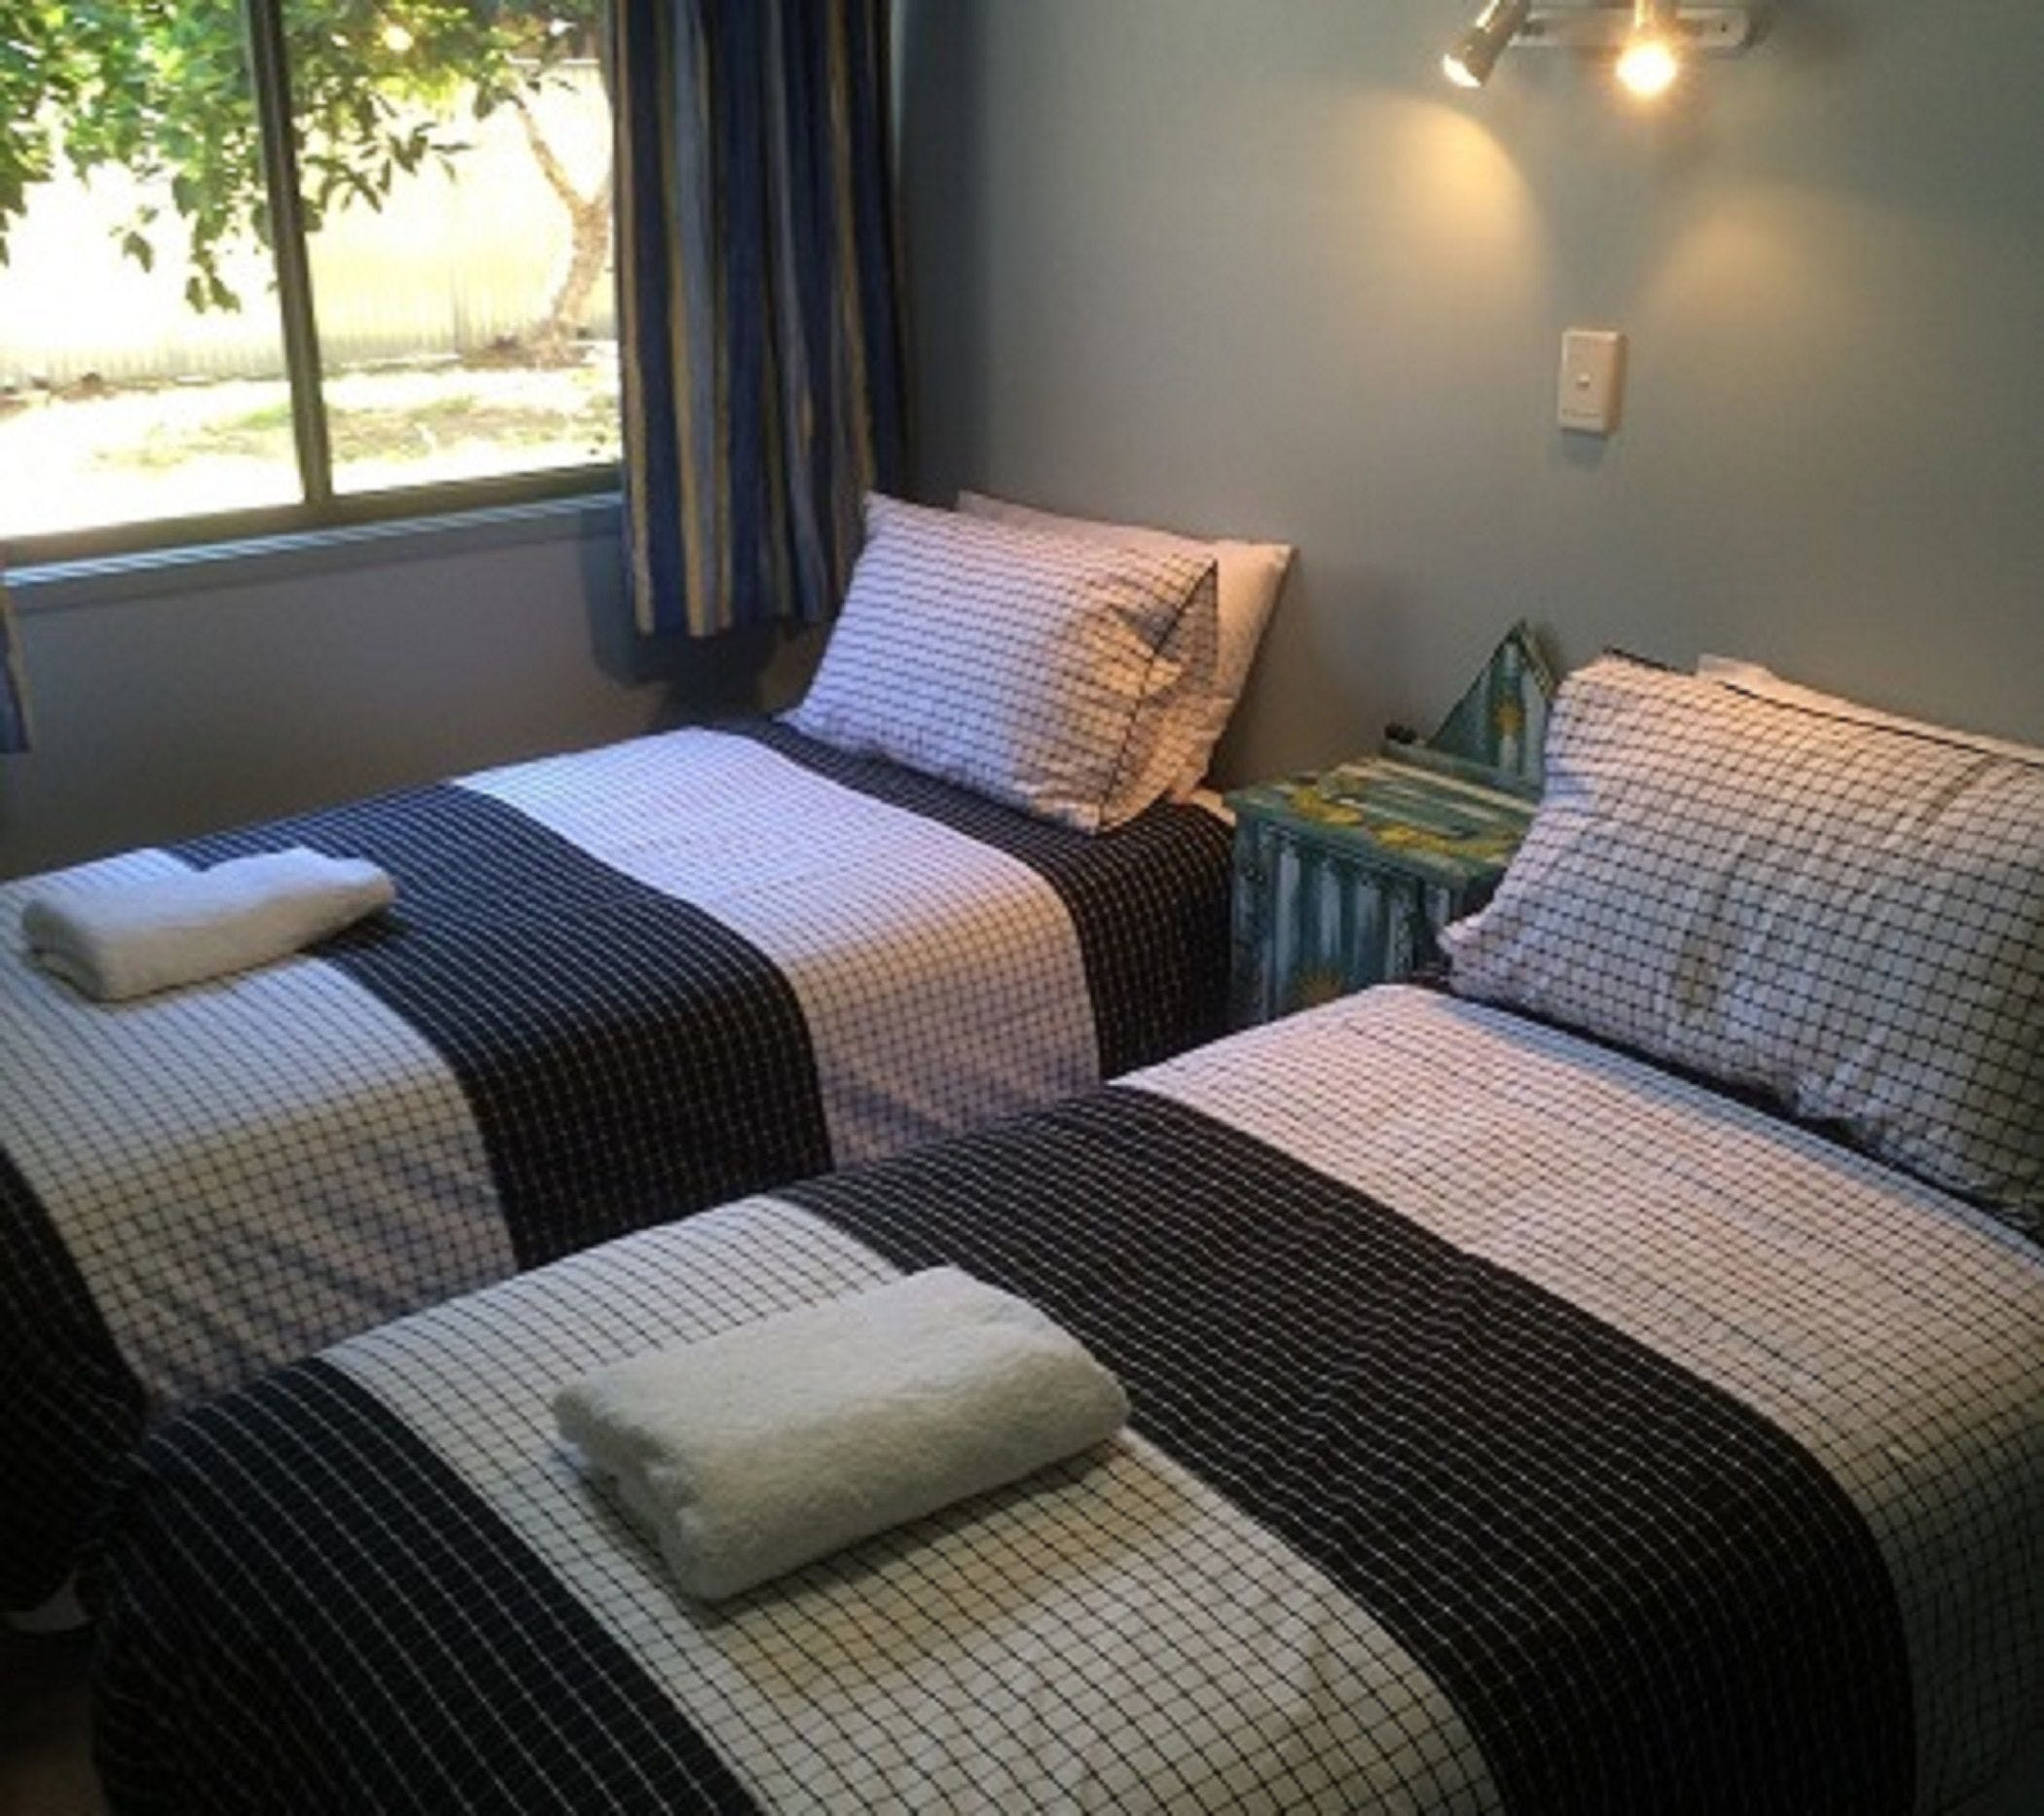 Tin Shack - Accommodation in Bendigo